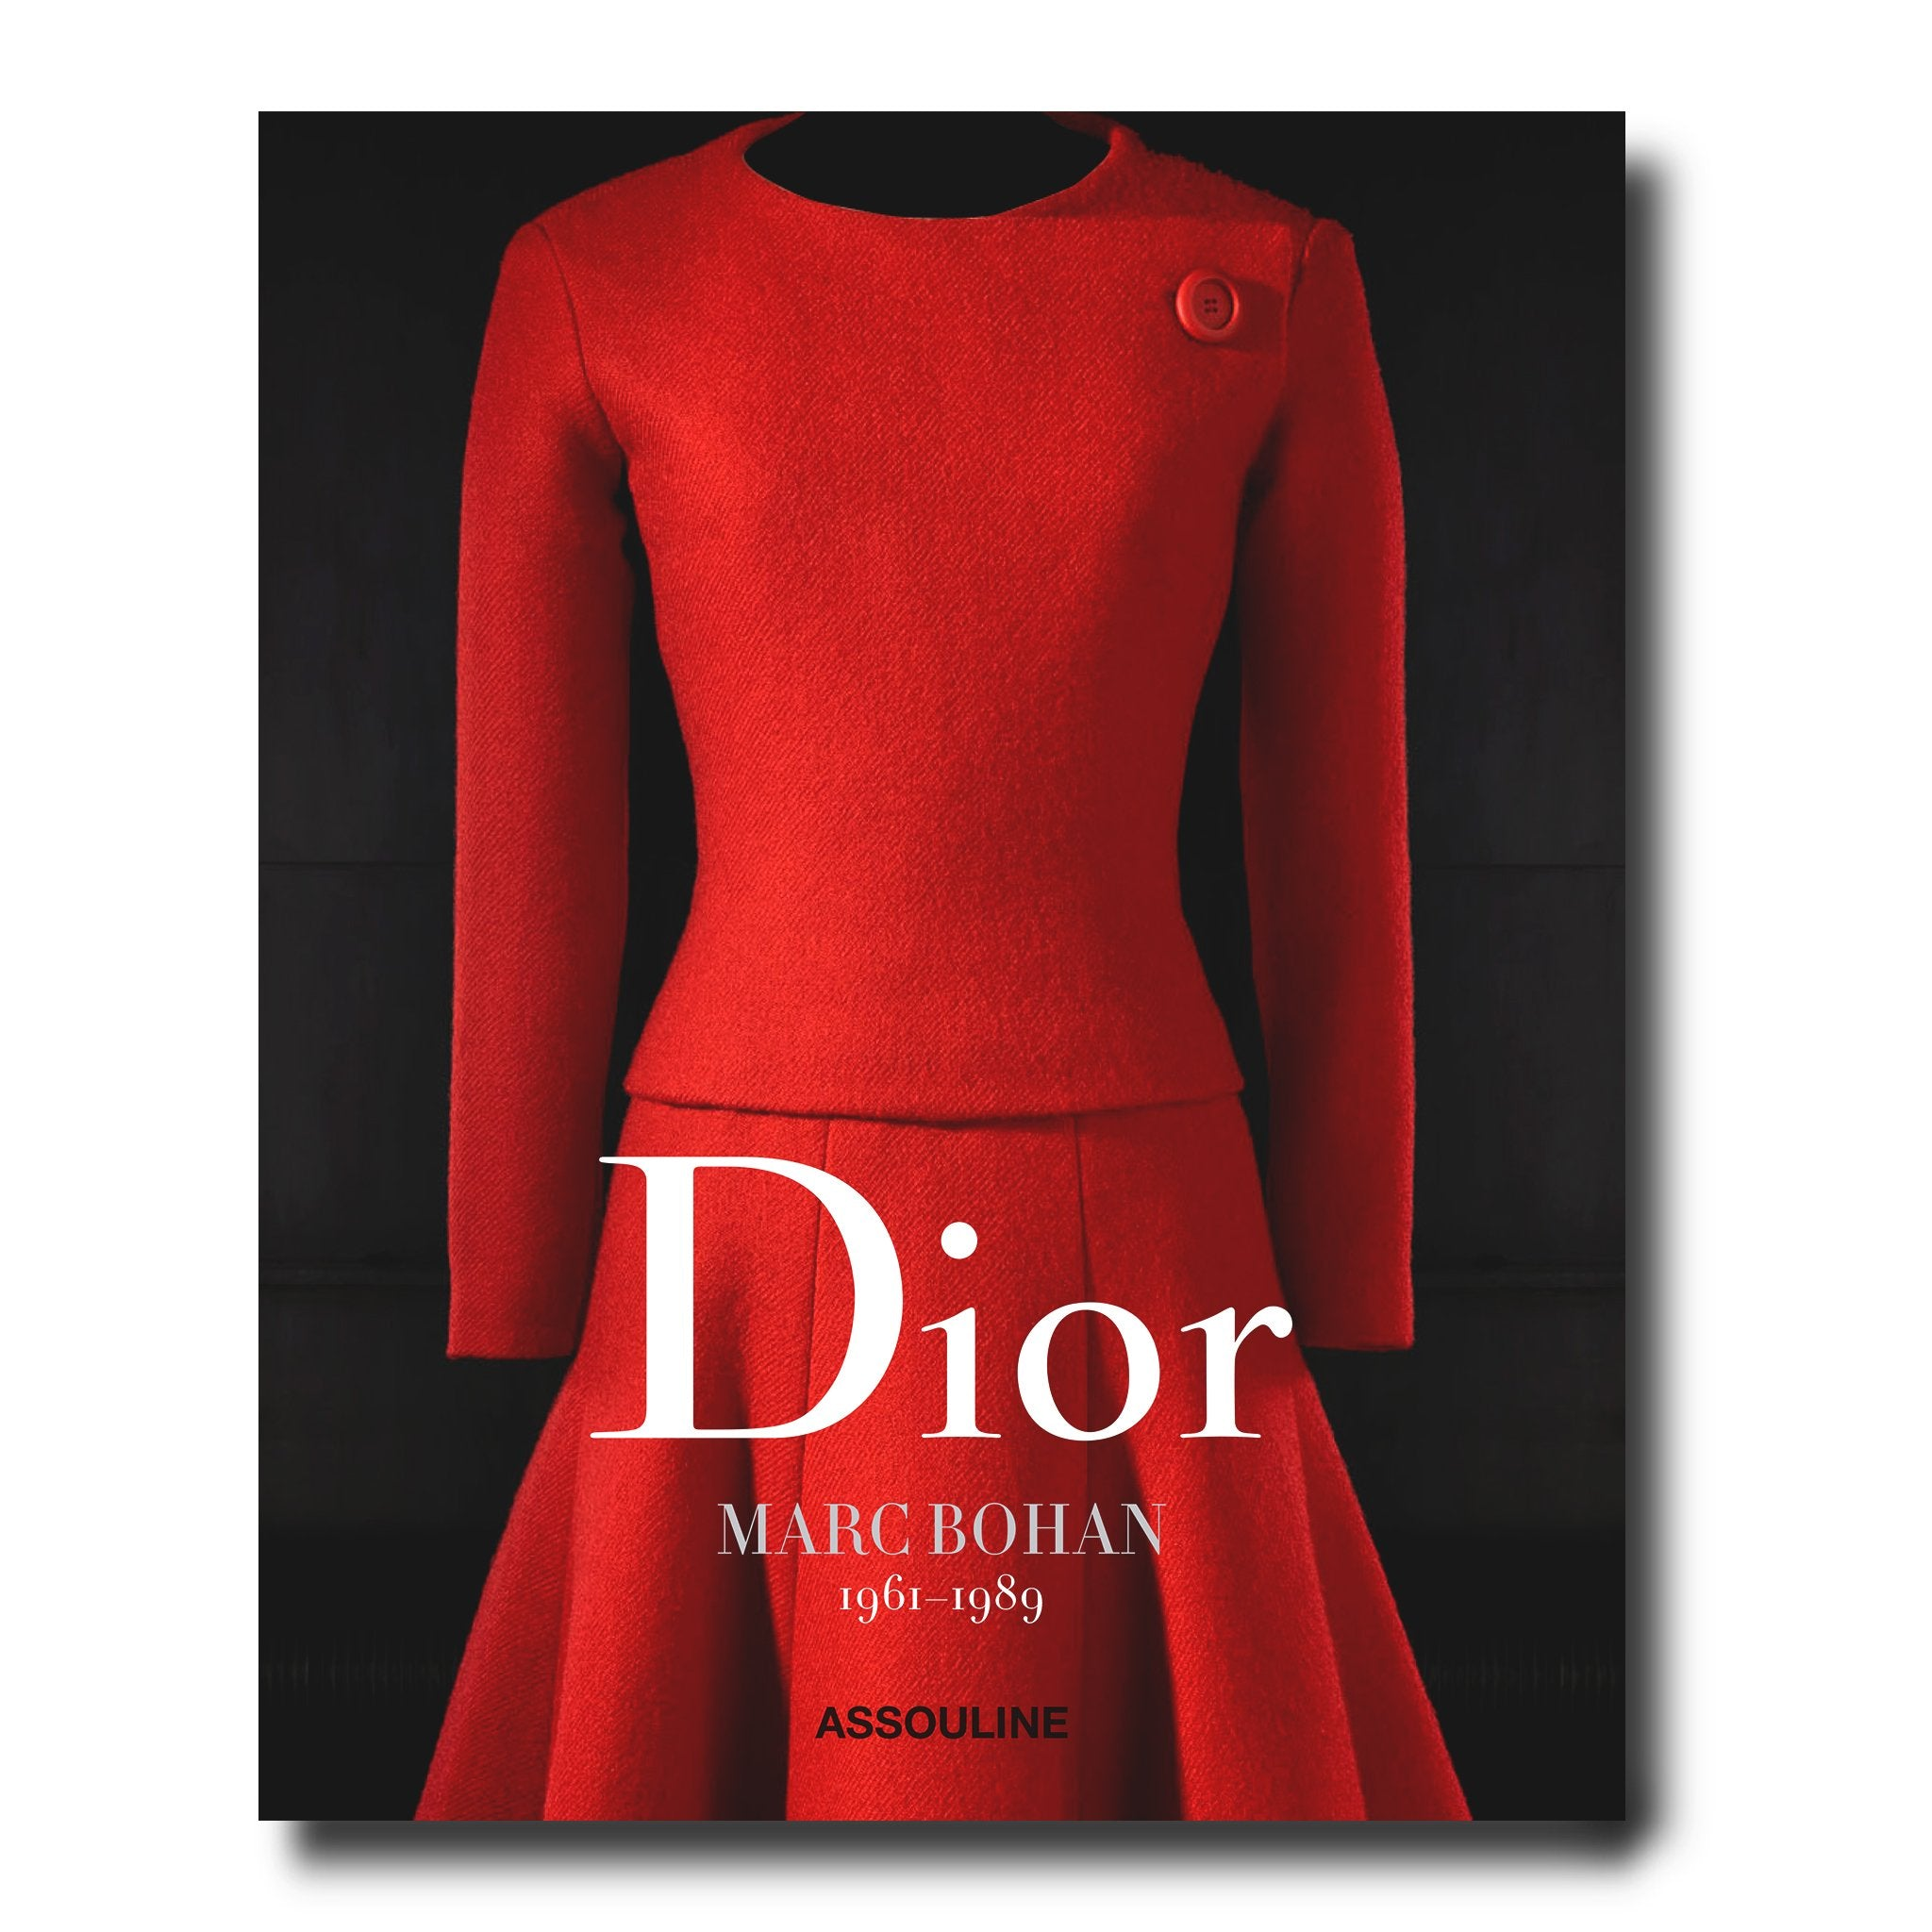 Dior by Marc Bohan (French)